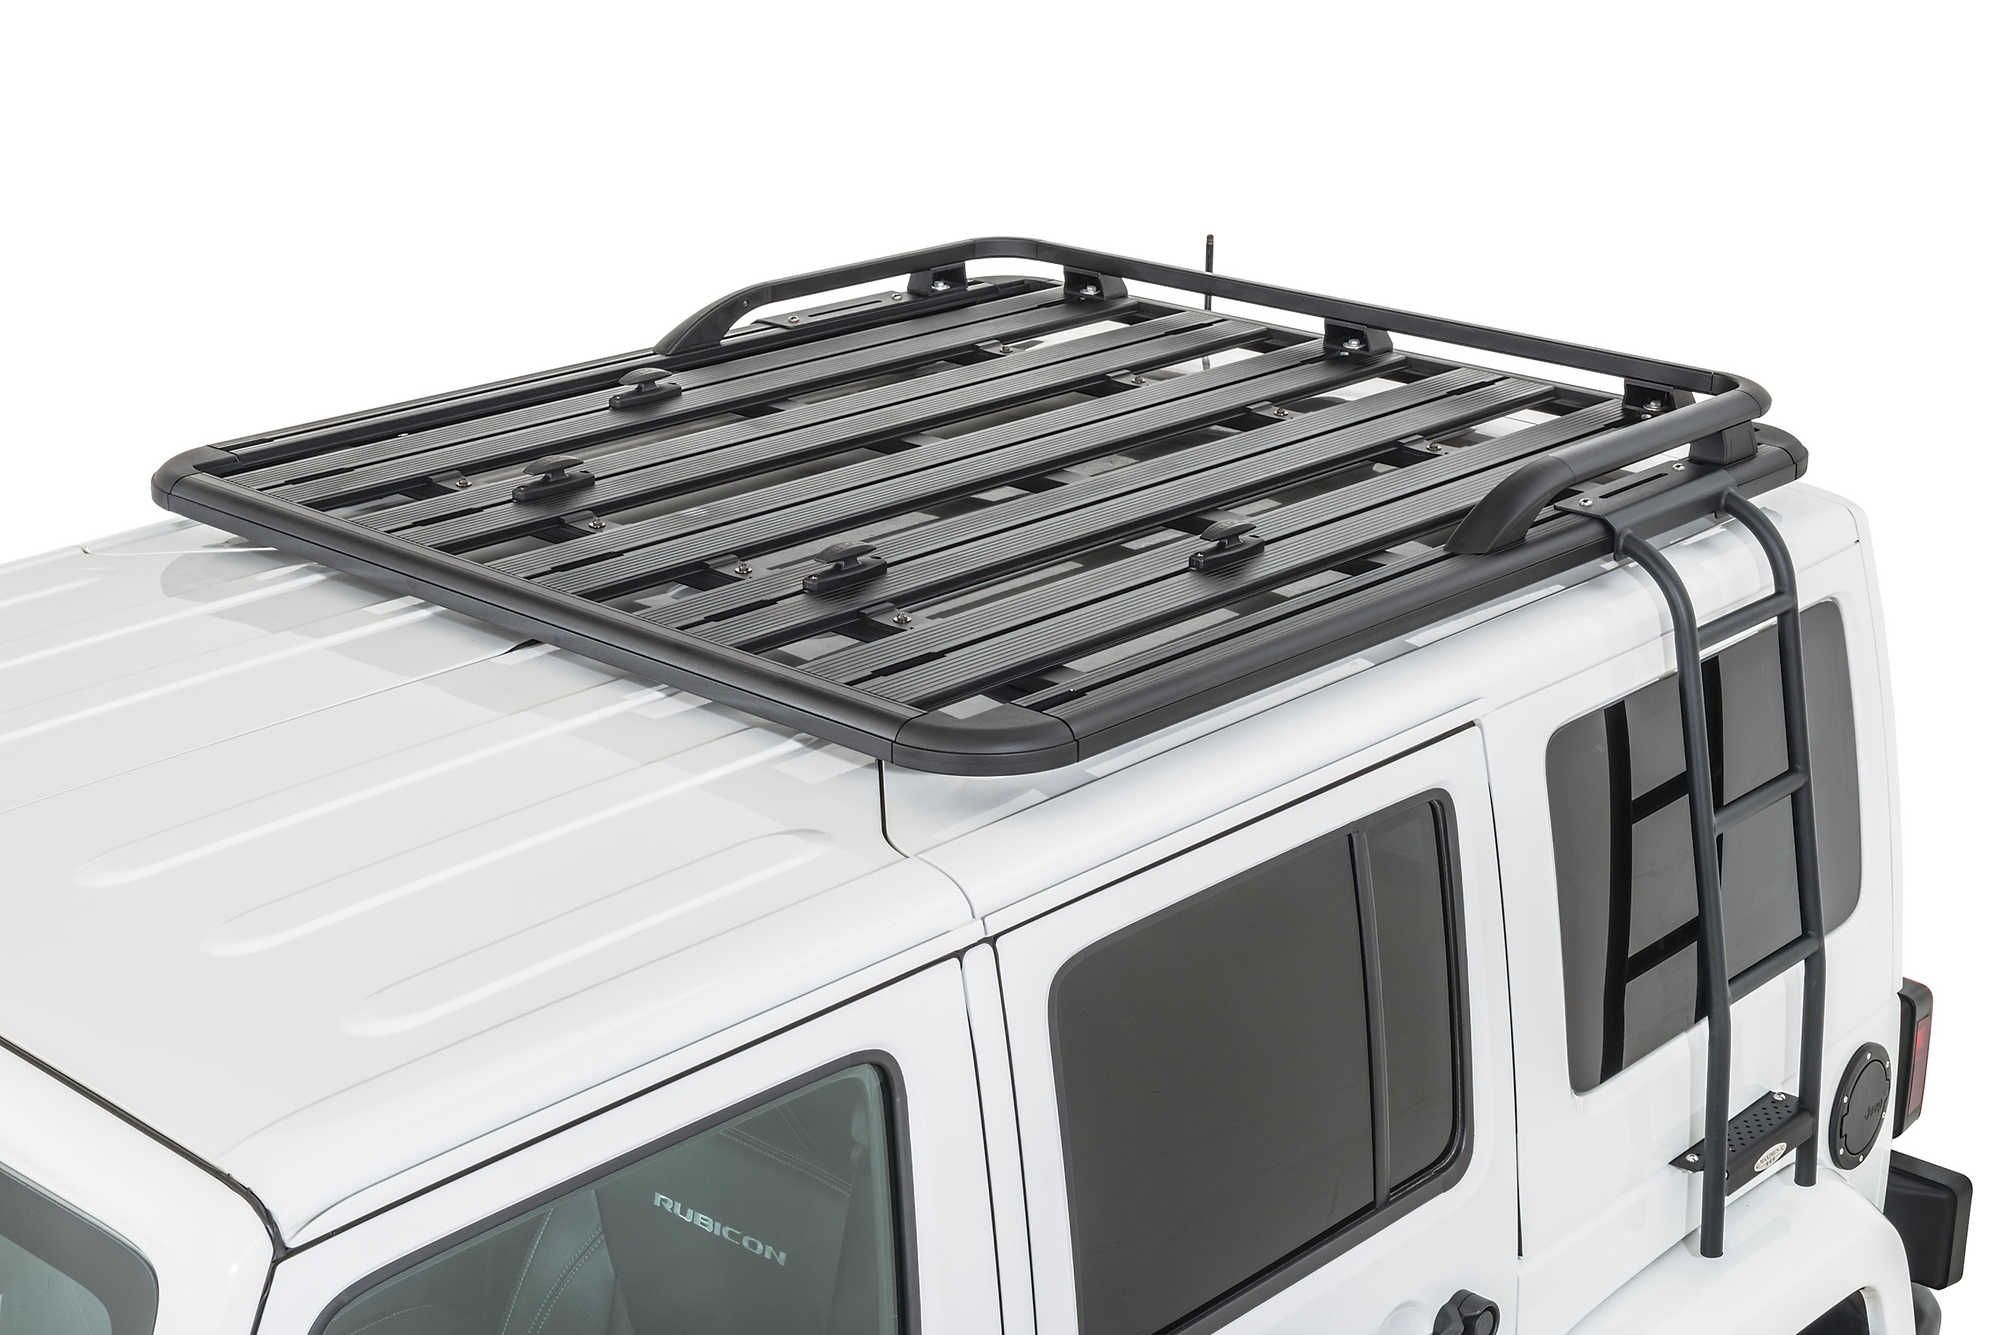 The Maximus 3 Pioneer Roof Rack Is The Ultimate Accessory To Increase Cargo Carrying Capacity For And Off Road Expedit Jeep Wrangler Jeep Wrangler Jk Roof Rack